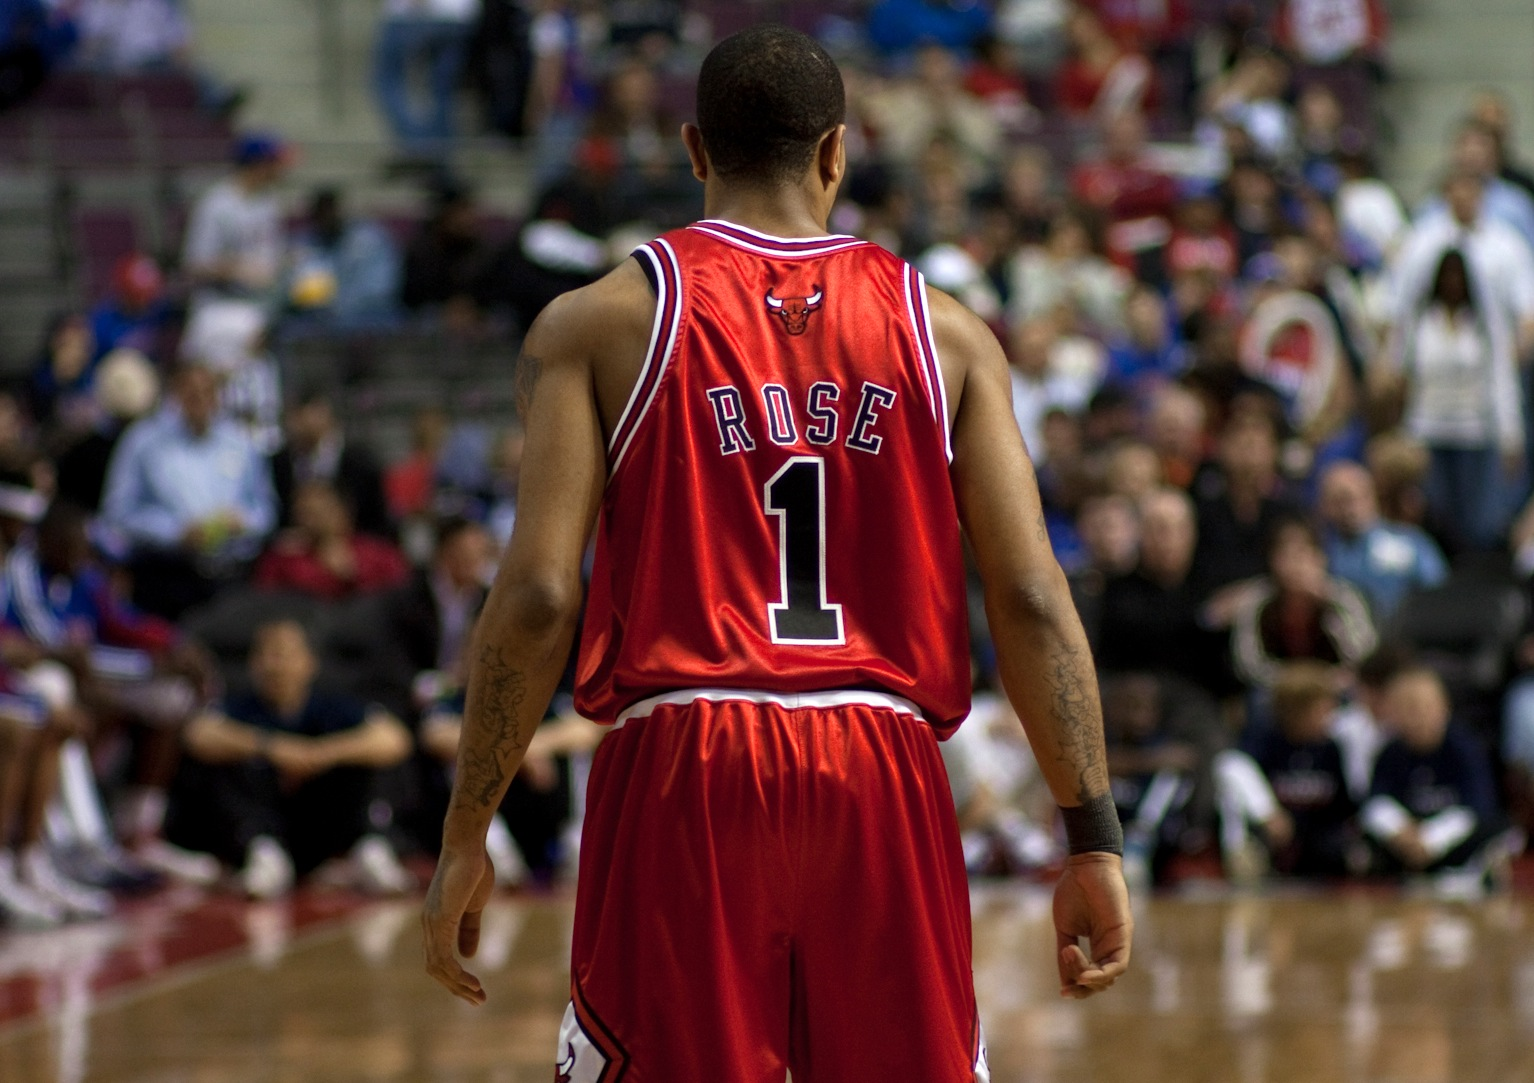 5 Derrick Rose - best selling NBA jerseys